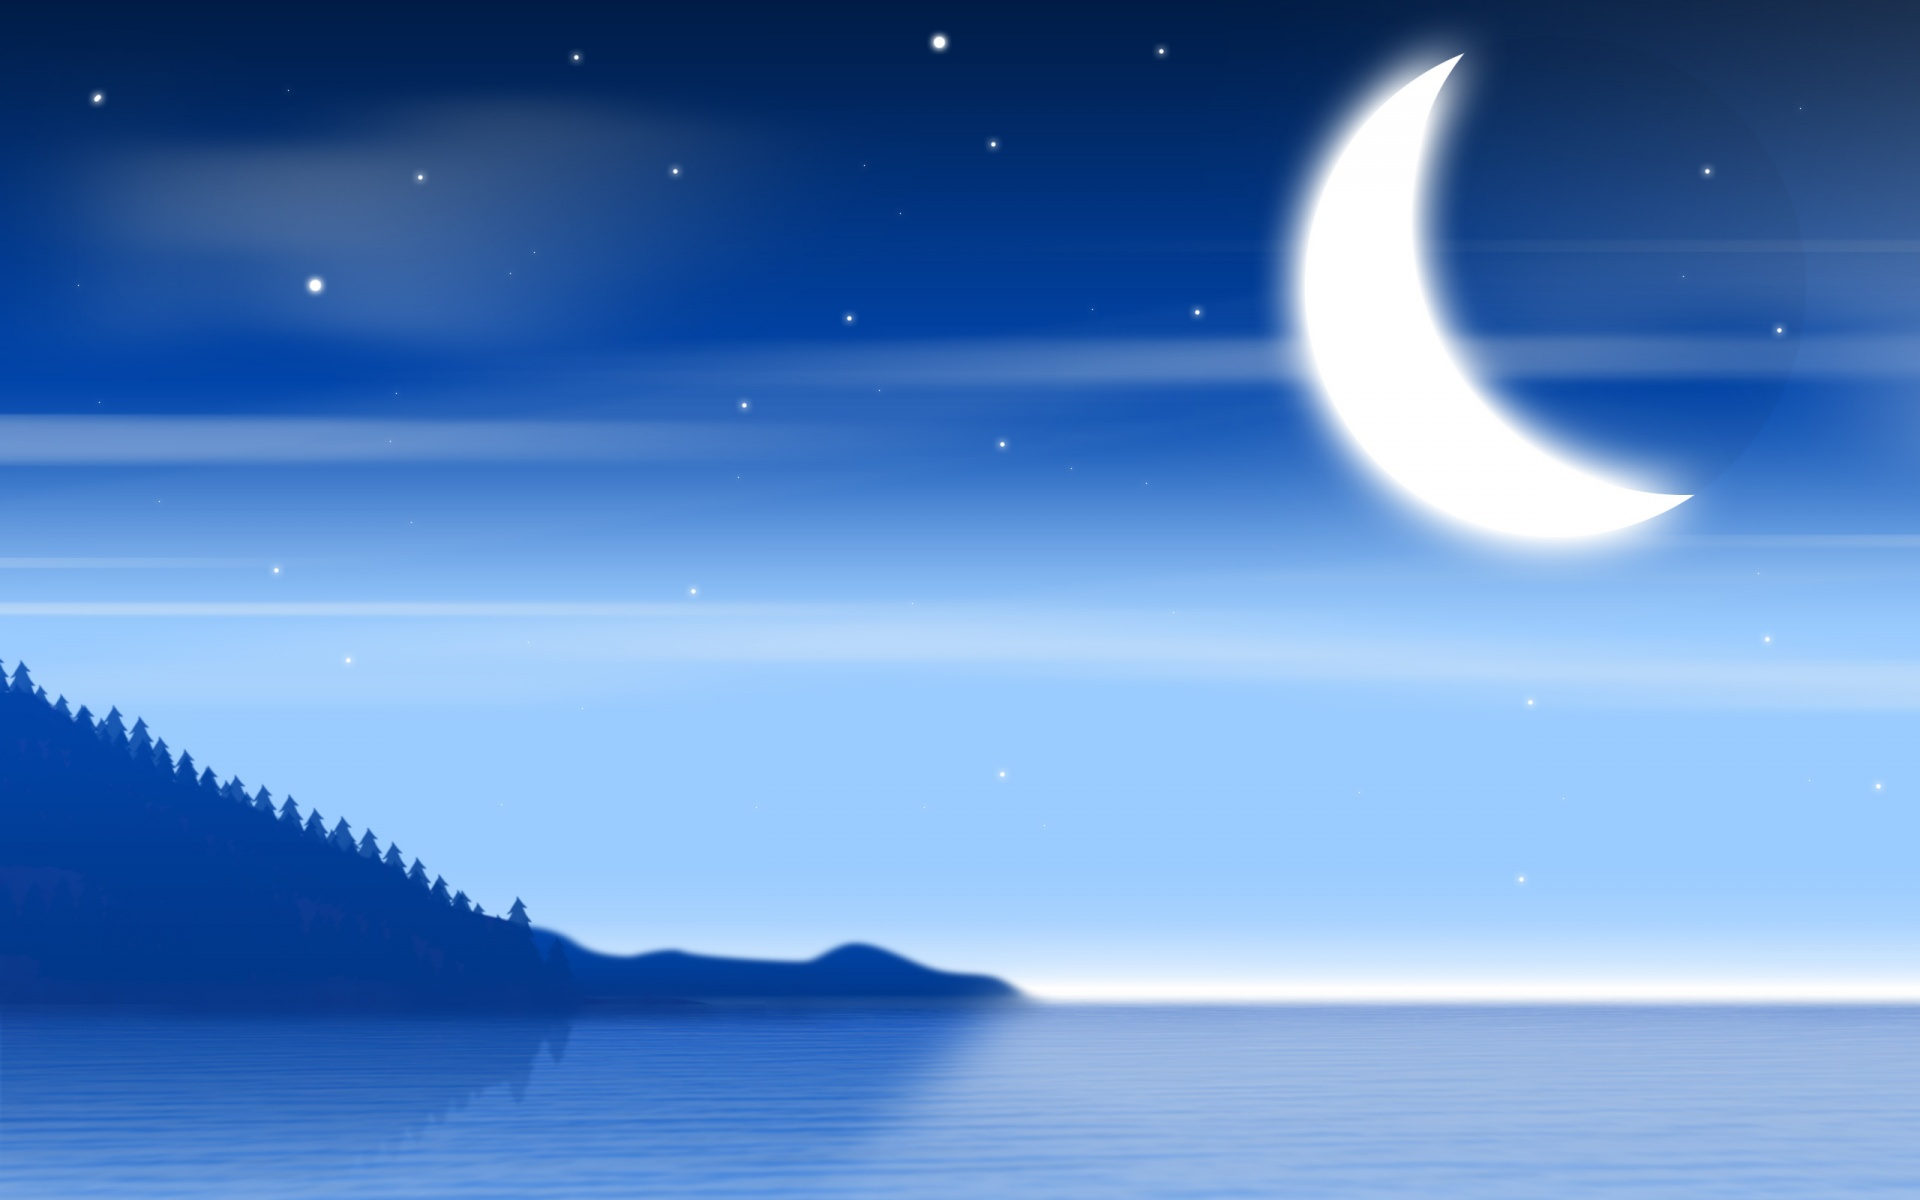 Moon with Sea PPT Backgrounds for your PowerPoint Templates 1920x1200